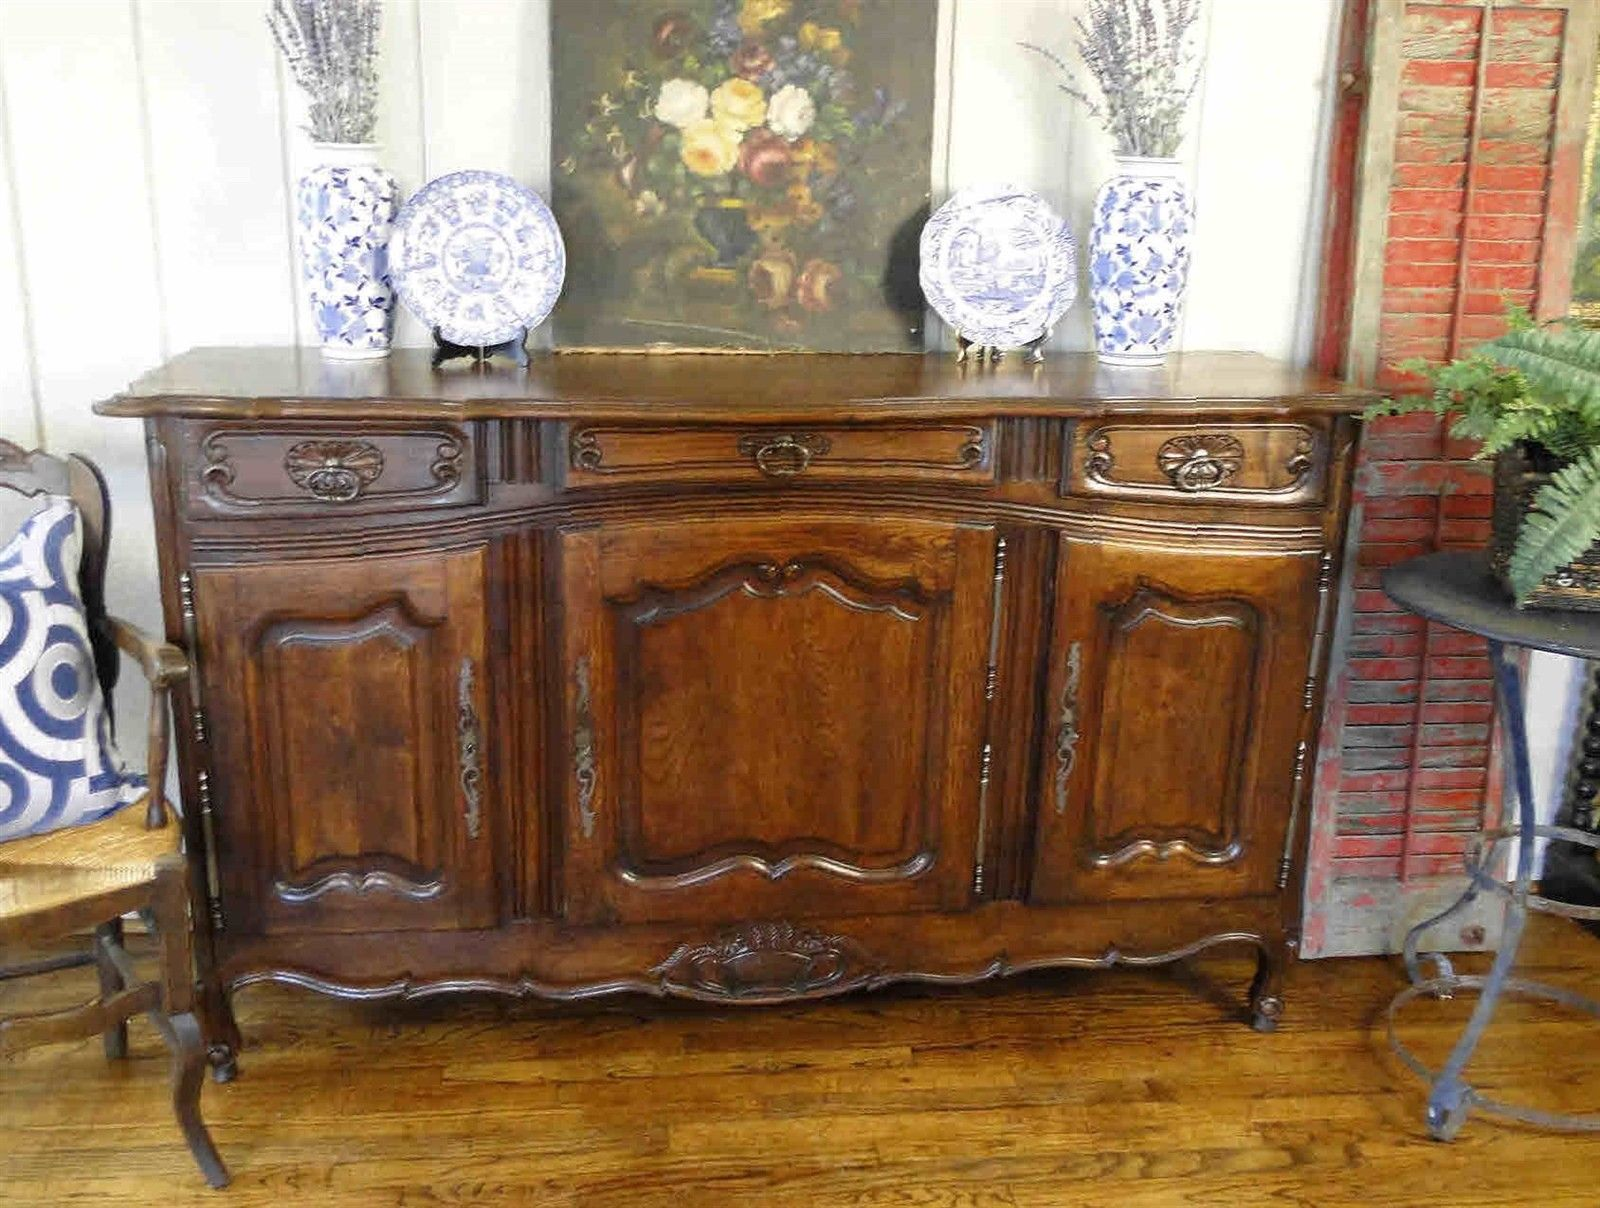 Antique French Country Sideboard Buffet Carved Dark Walnut Scalloped Panel doors